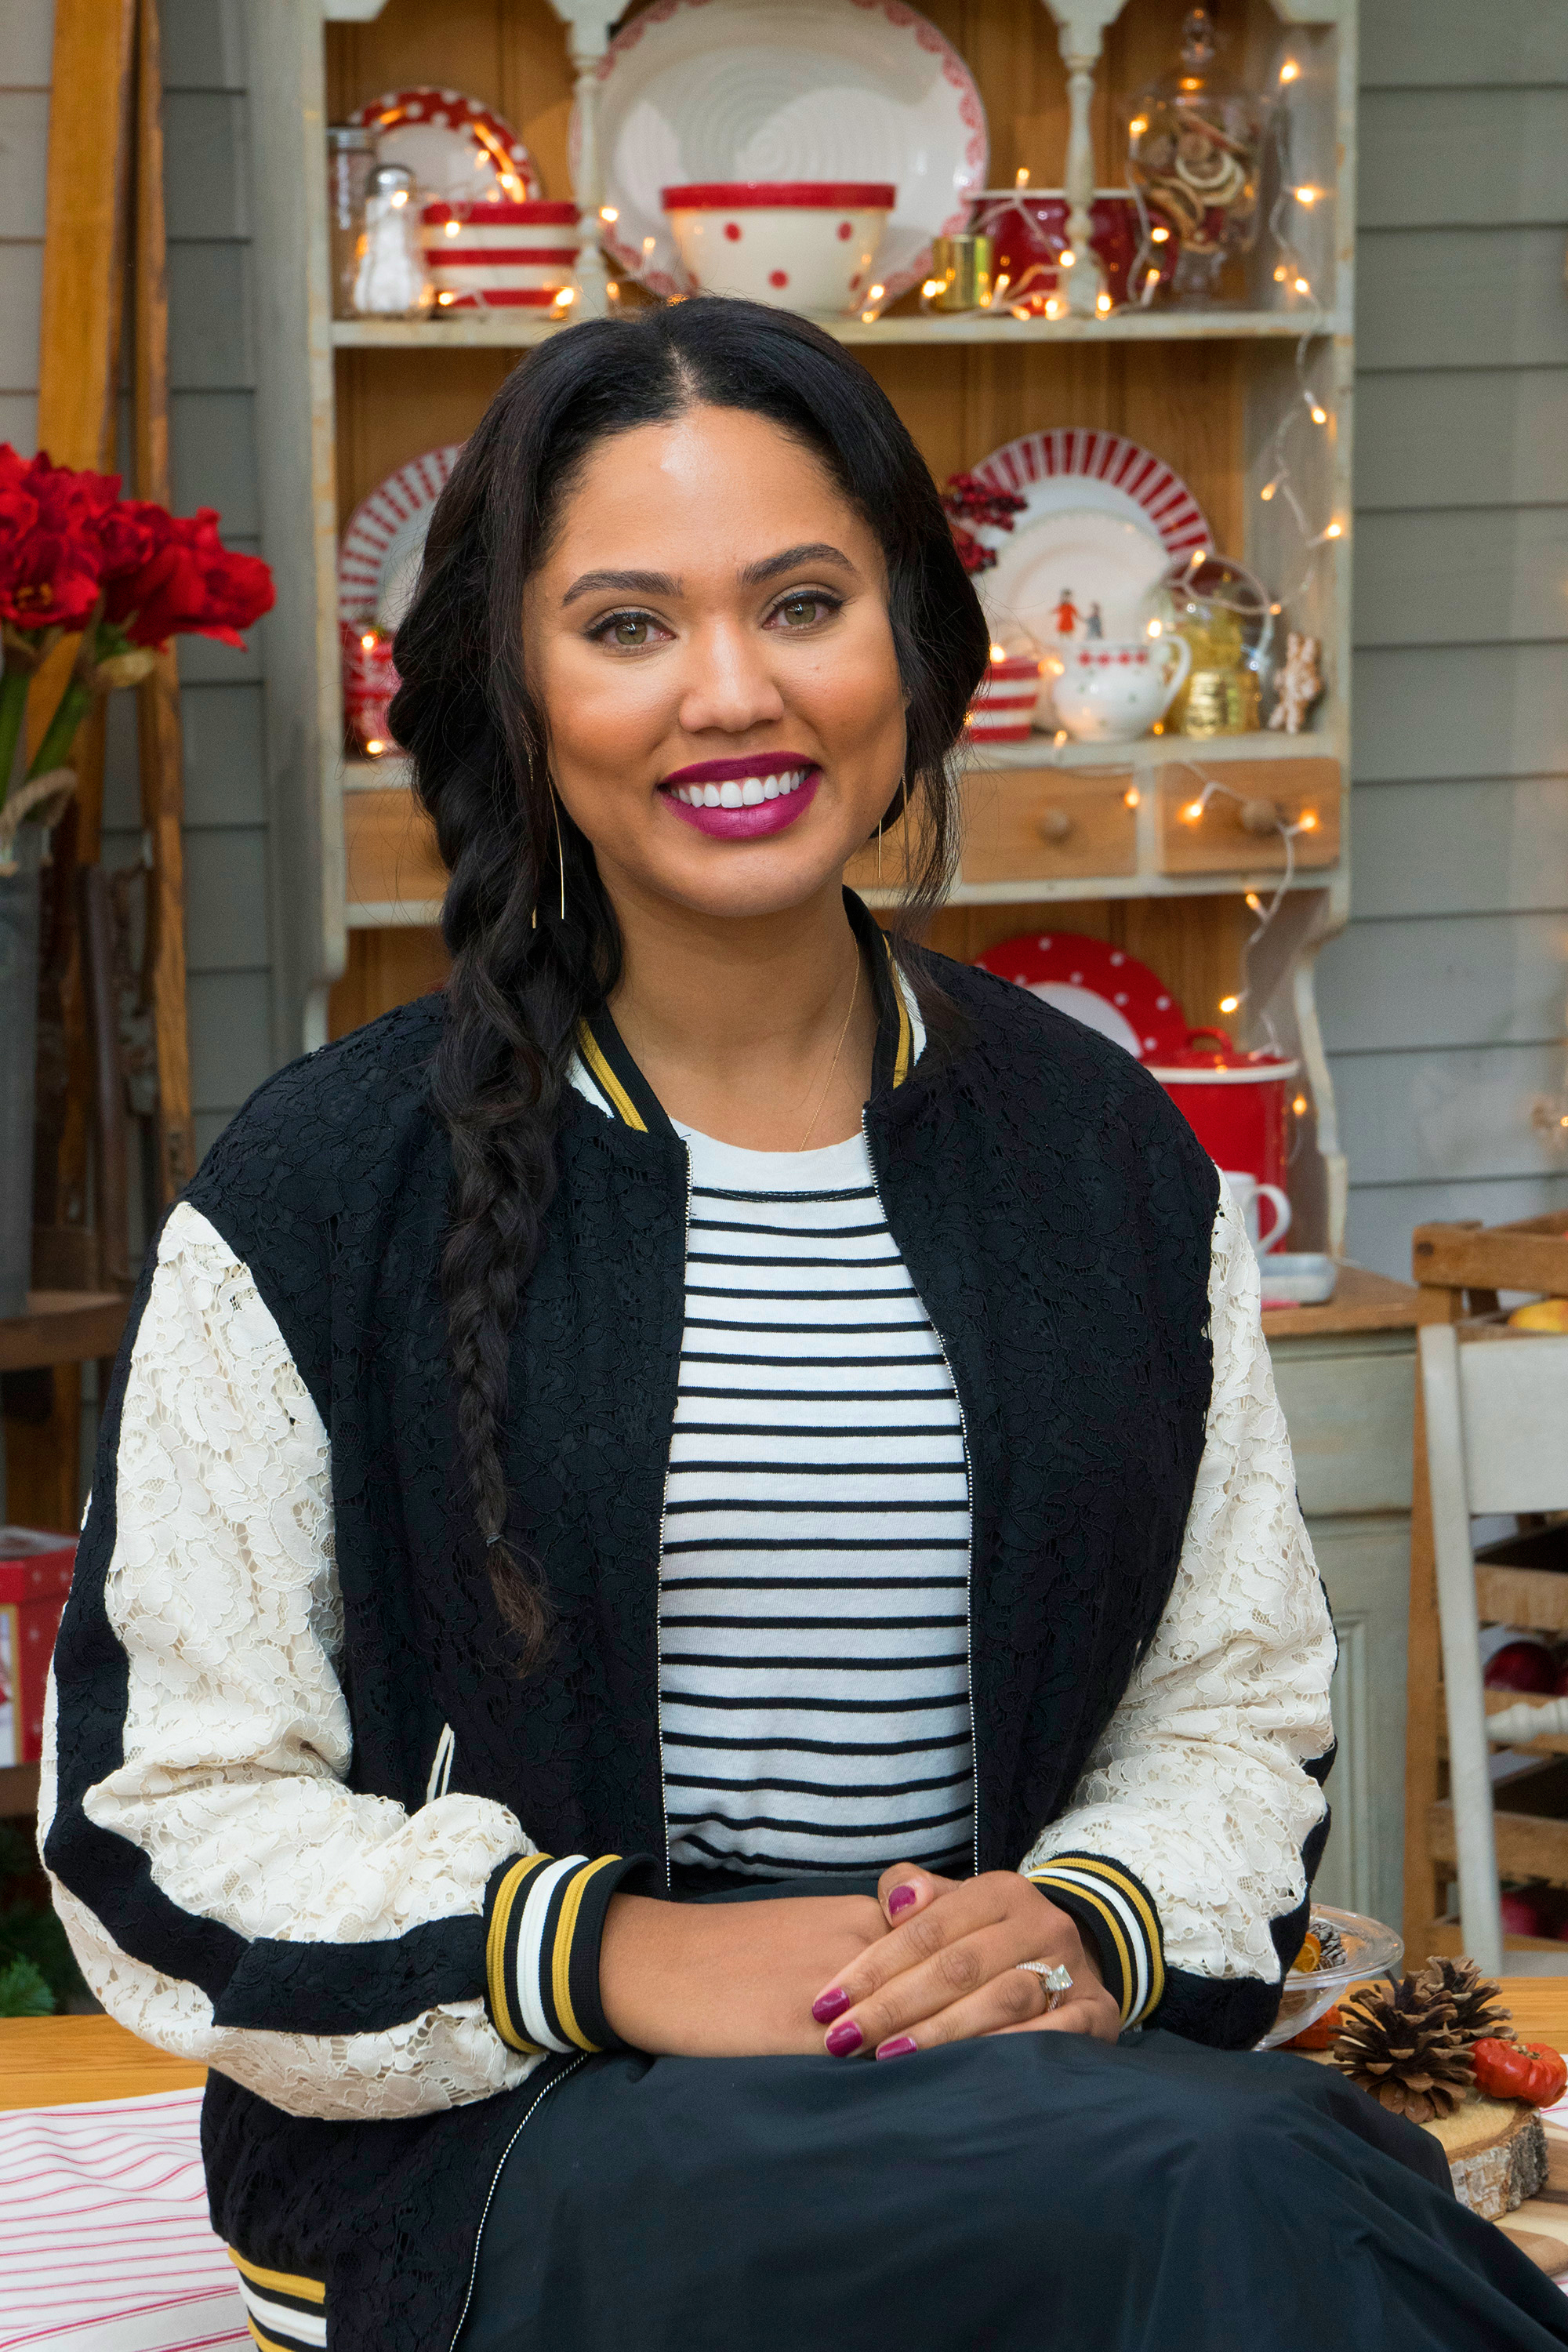 ayesha curry is  u0026 39 so in love u0026 39  with  u0026 39 sweet baby boy u0026 39  canon